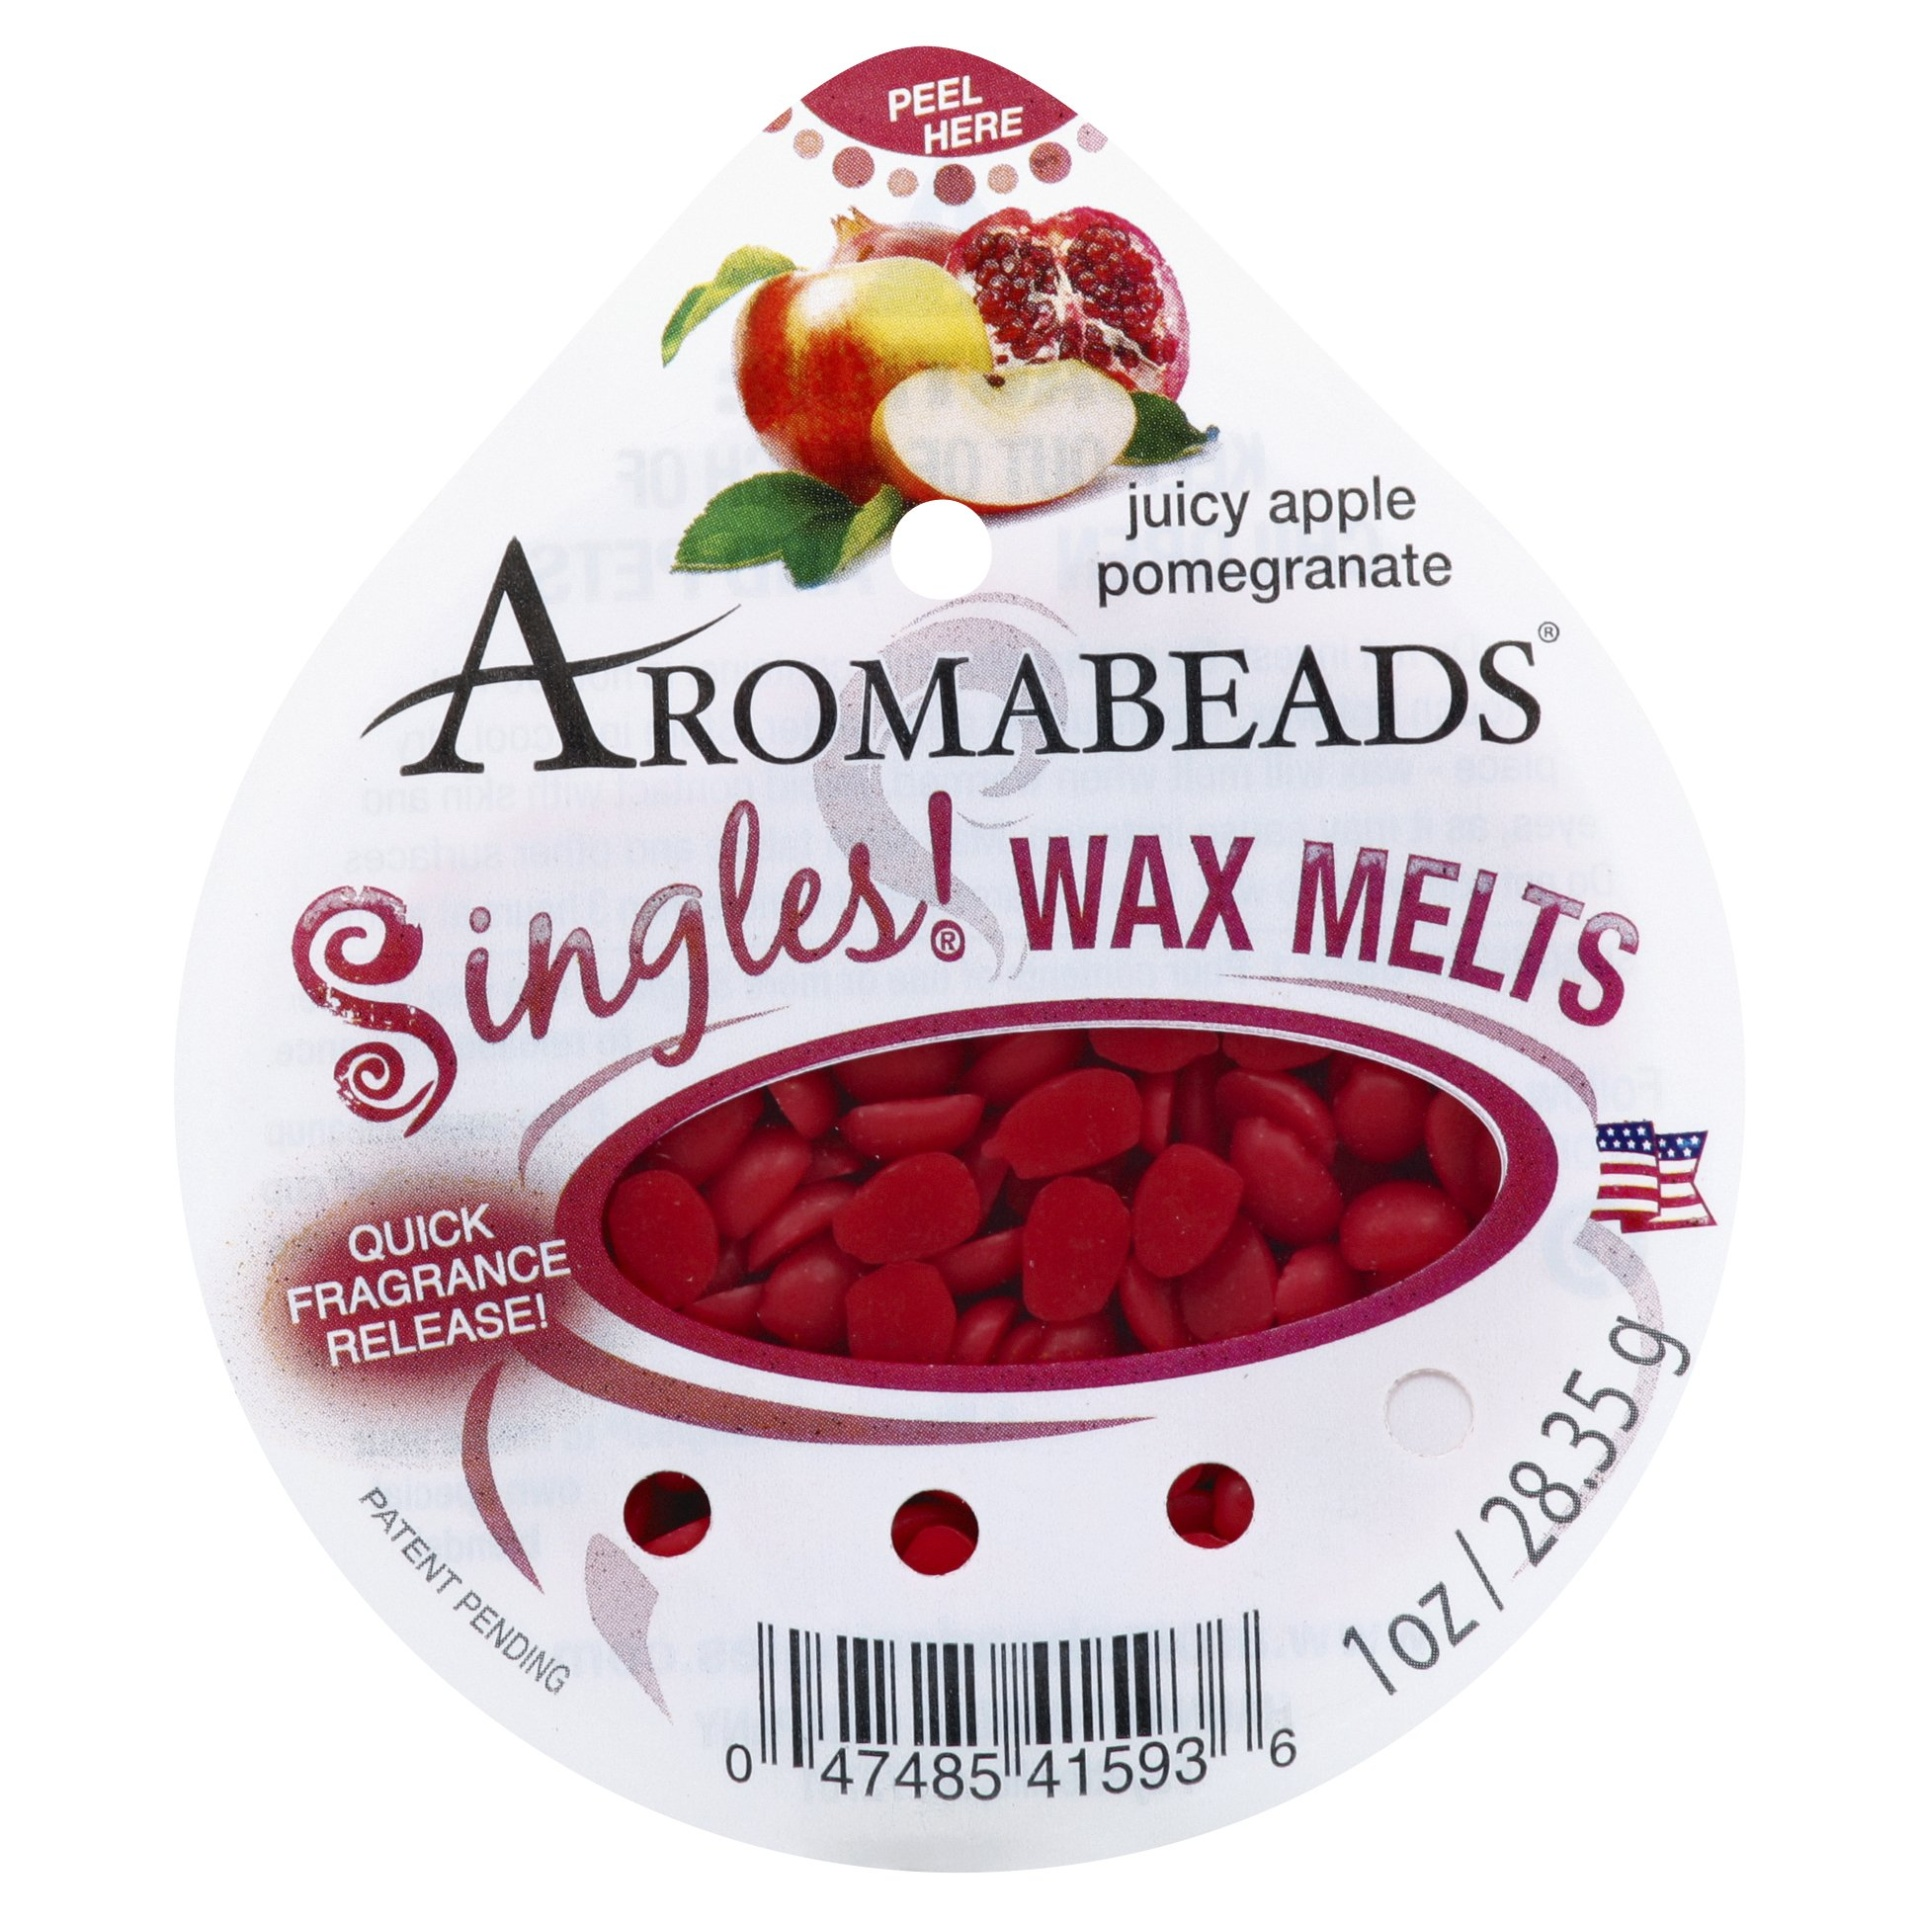 slide 1 of 2, Aromabeads Singles Wax Melts, Juicy Apple Pomegranate,